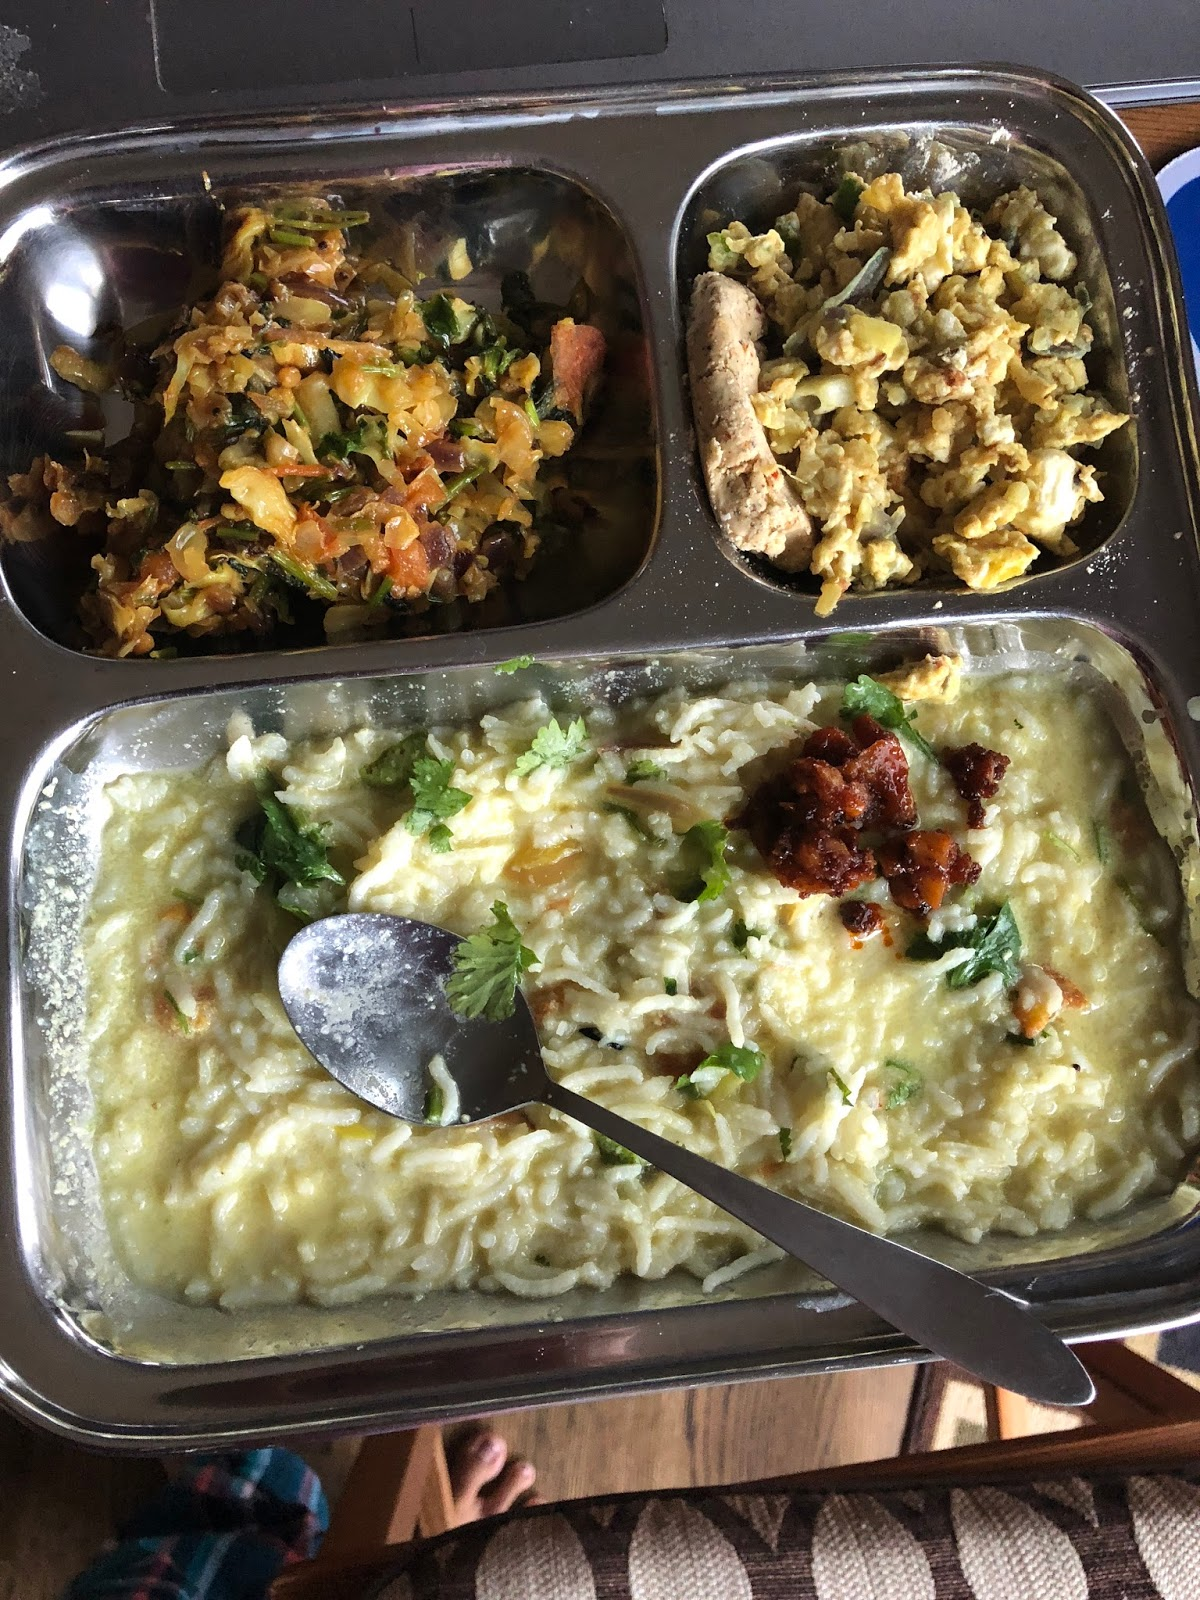 Gestational diabetes food options indian vegetarian eggatarian i always used a measuring cup to measure the rice to about loosely packed 1 cup the side dishes should include good amount of proteins to keep us full for forumfinder